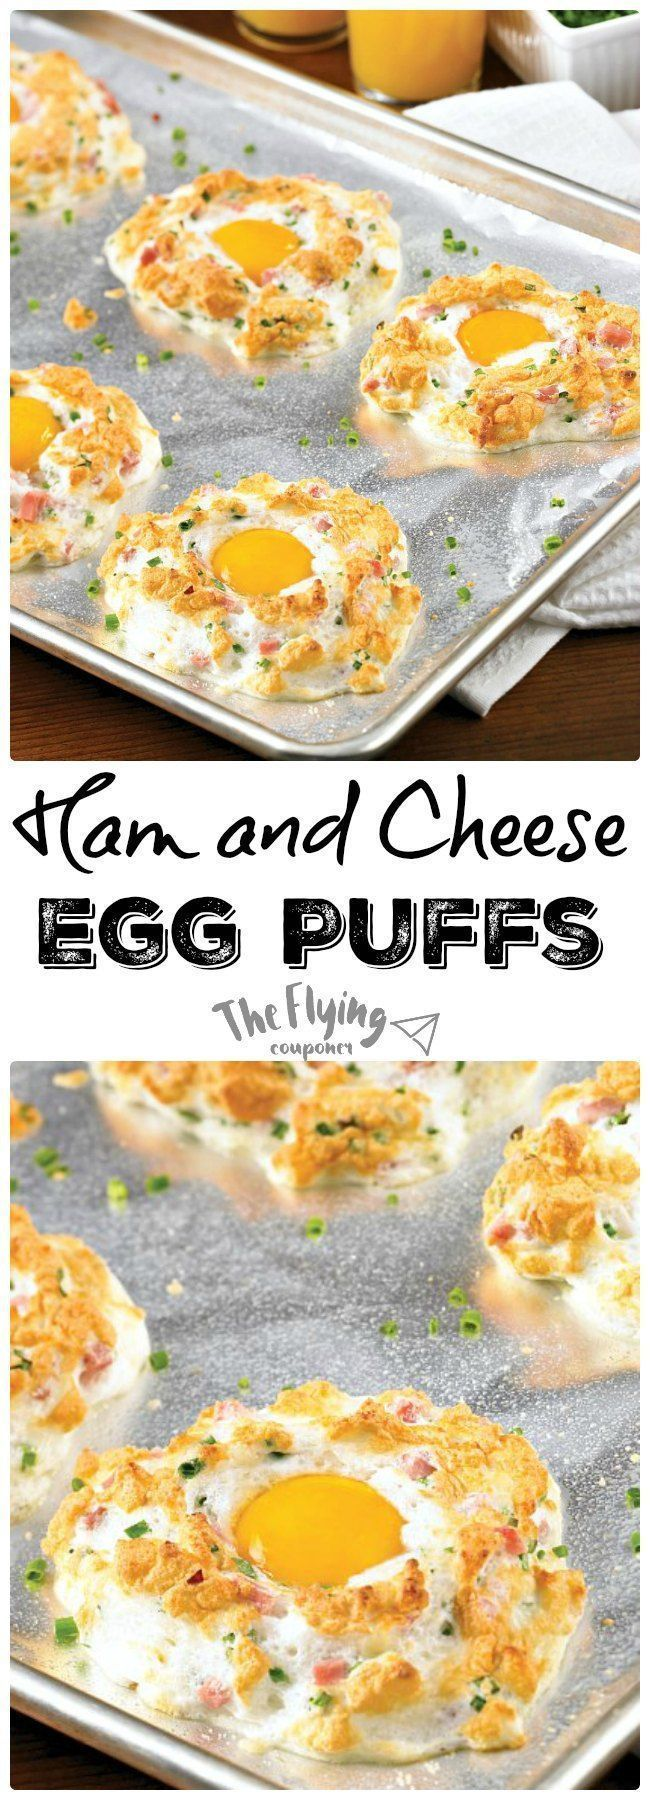 Ham and cheese egg puffs easy and healthy breakfast recipe ideas easy and healthy breakfast recipe ideas the flying couponer solutioingenieria Image collections